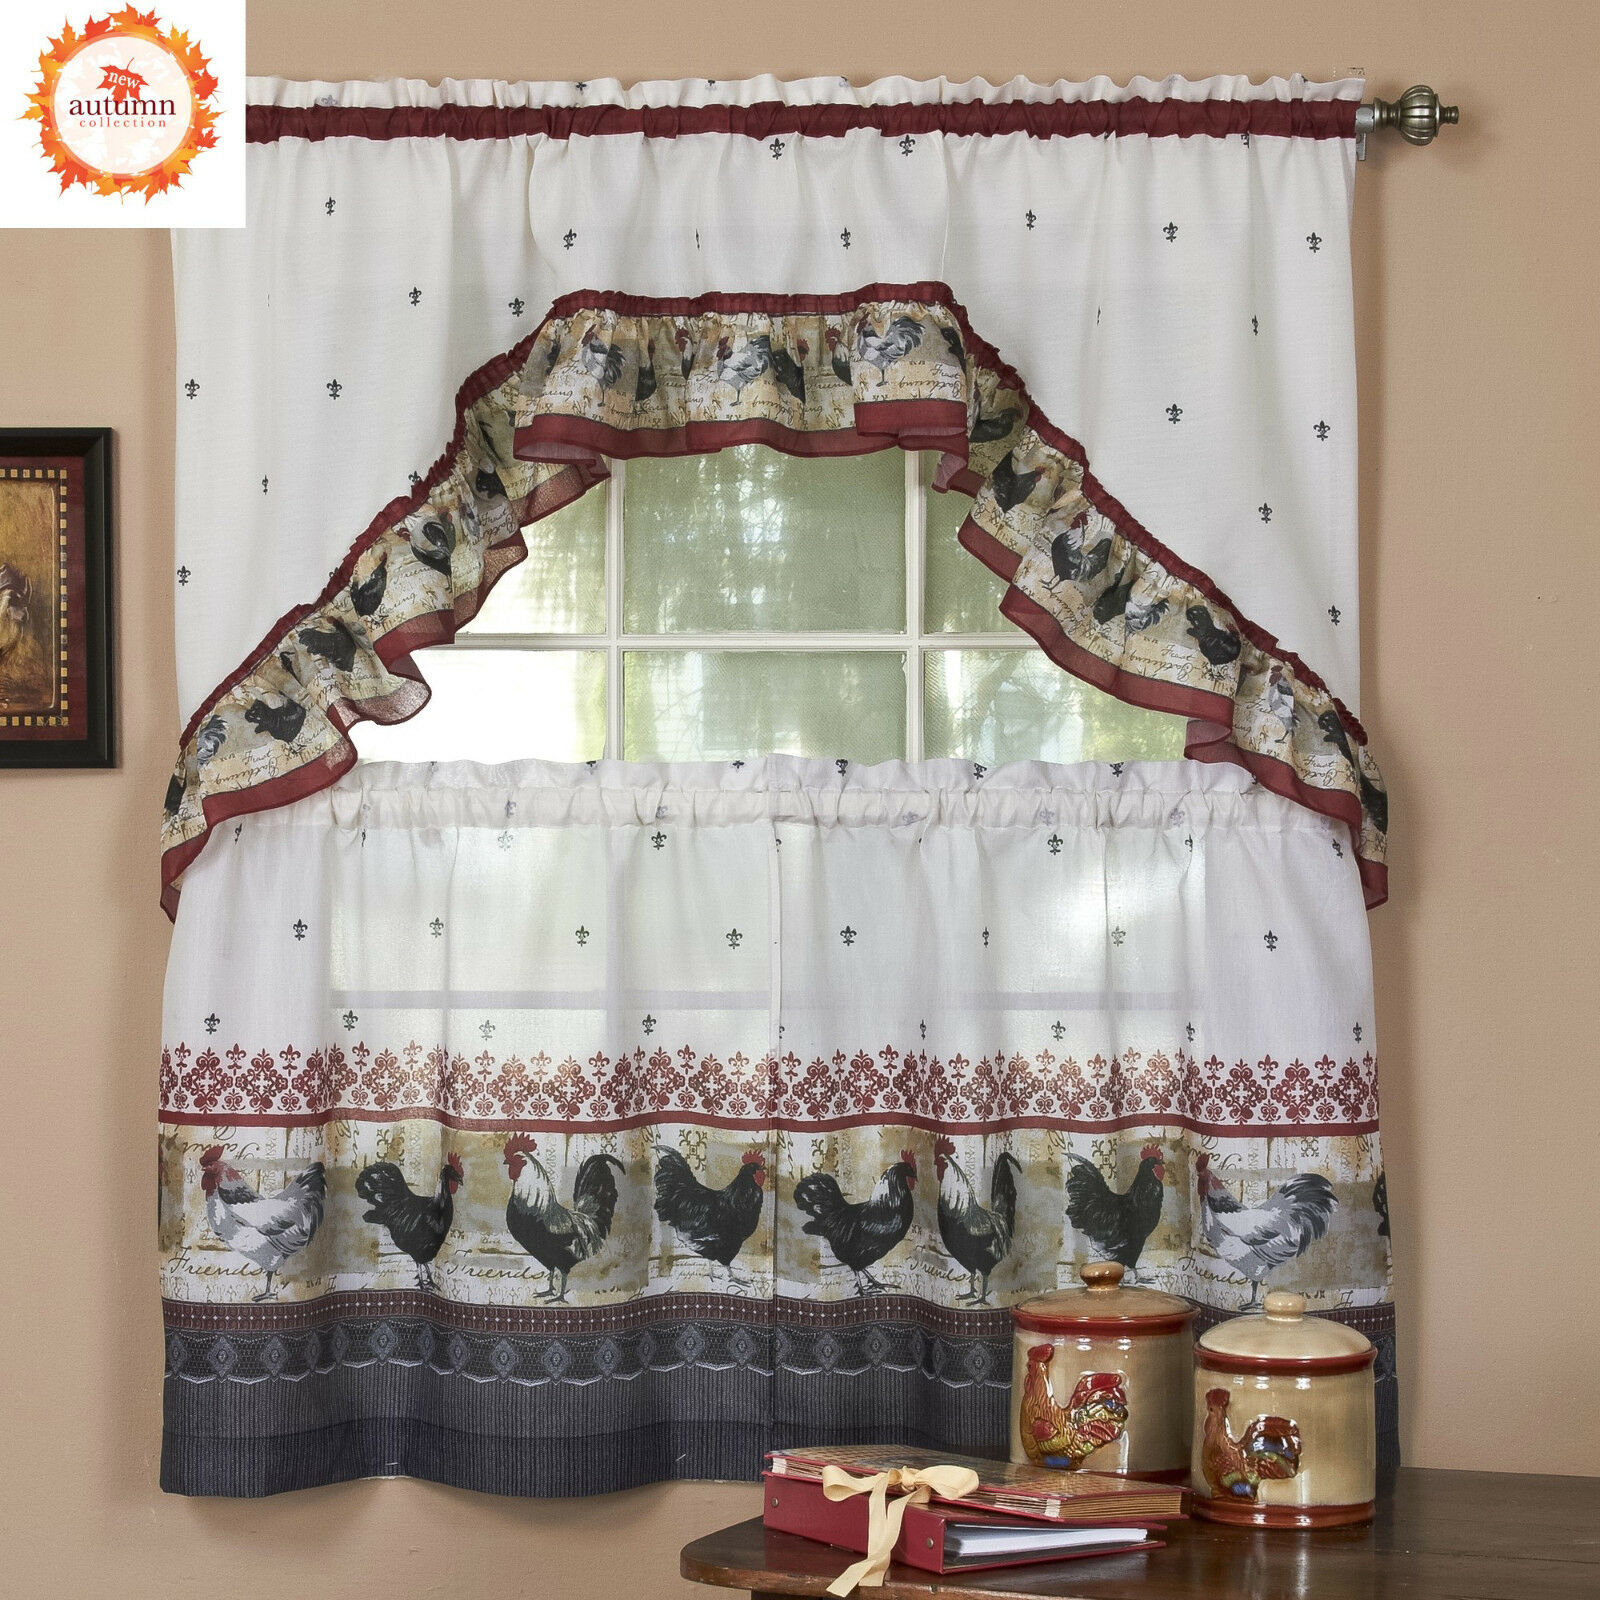 Rooster Complete Kitchen Curtain Tier And Swag Set – Assorted Sizes With Regard To Delicious Apples Kitchen Curtain Tier And Valance Sets (Gallery 4 of 20)